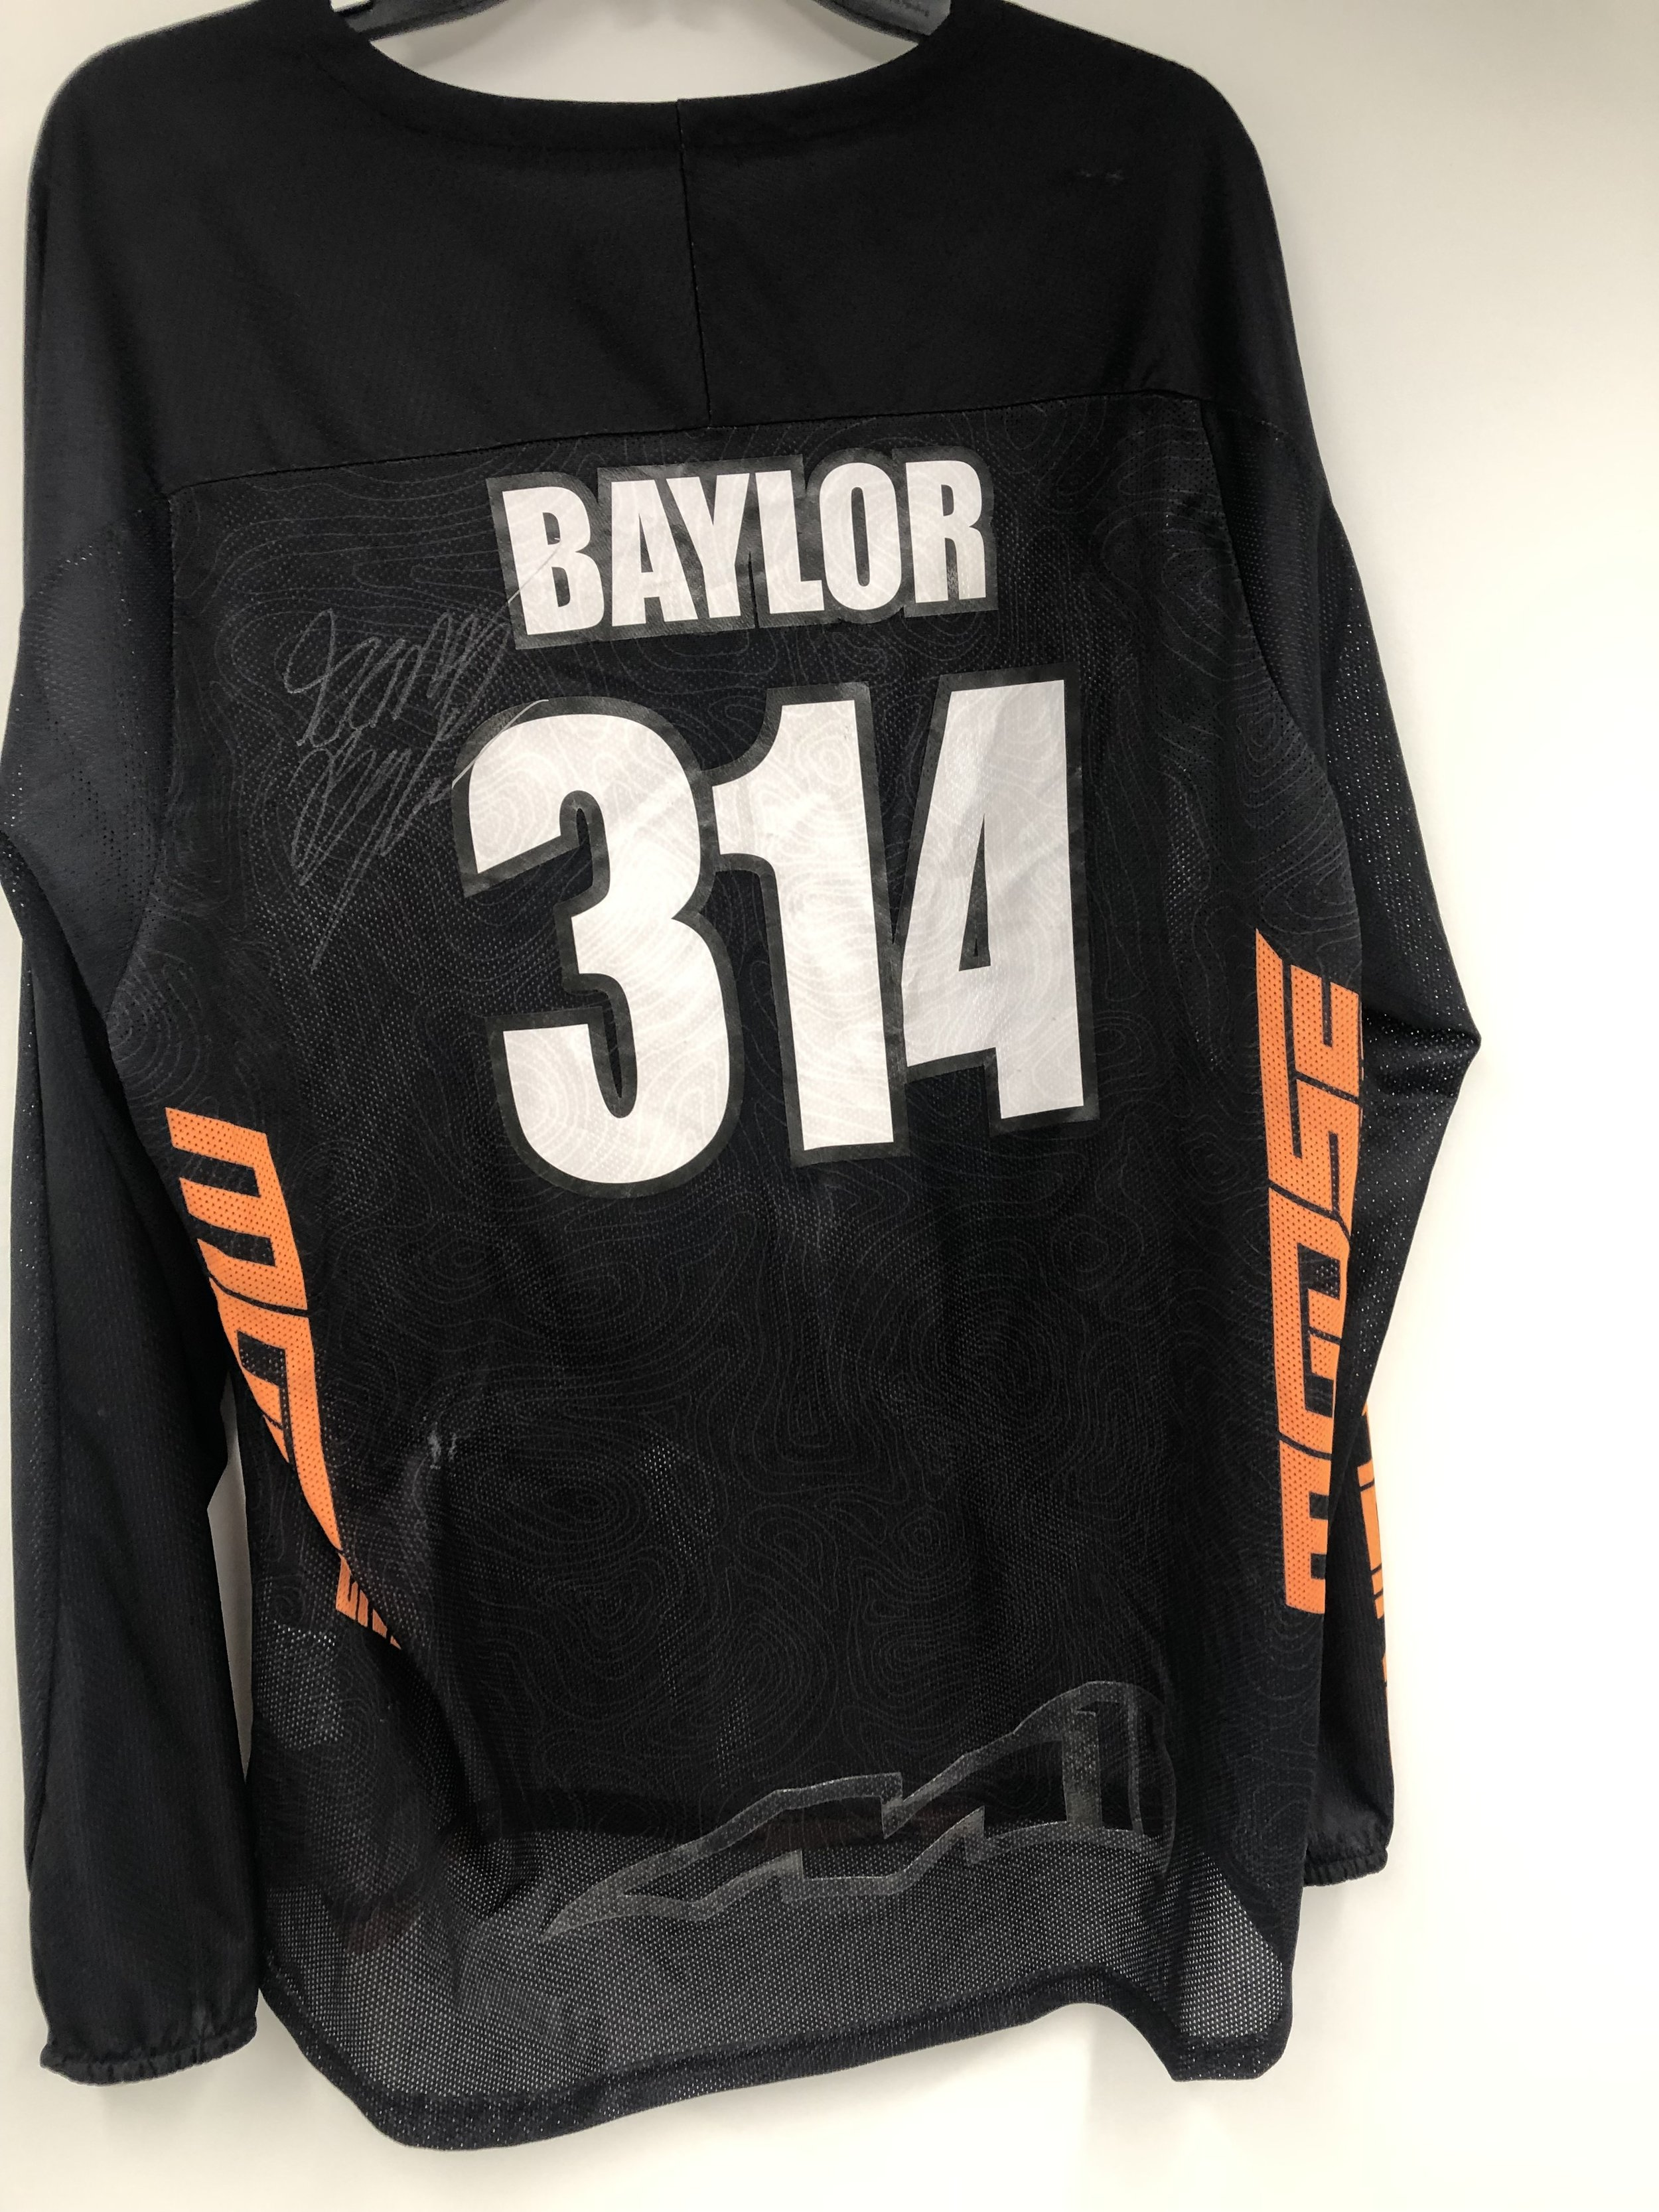 Click the image to bid on Grant Baylor Jersey